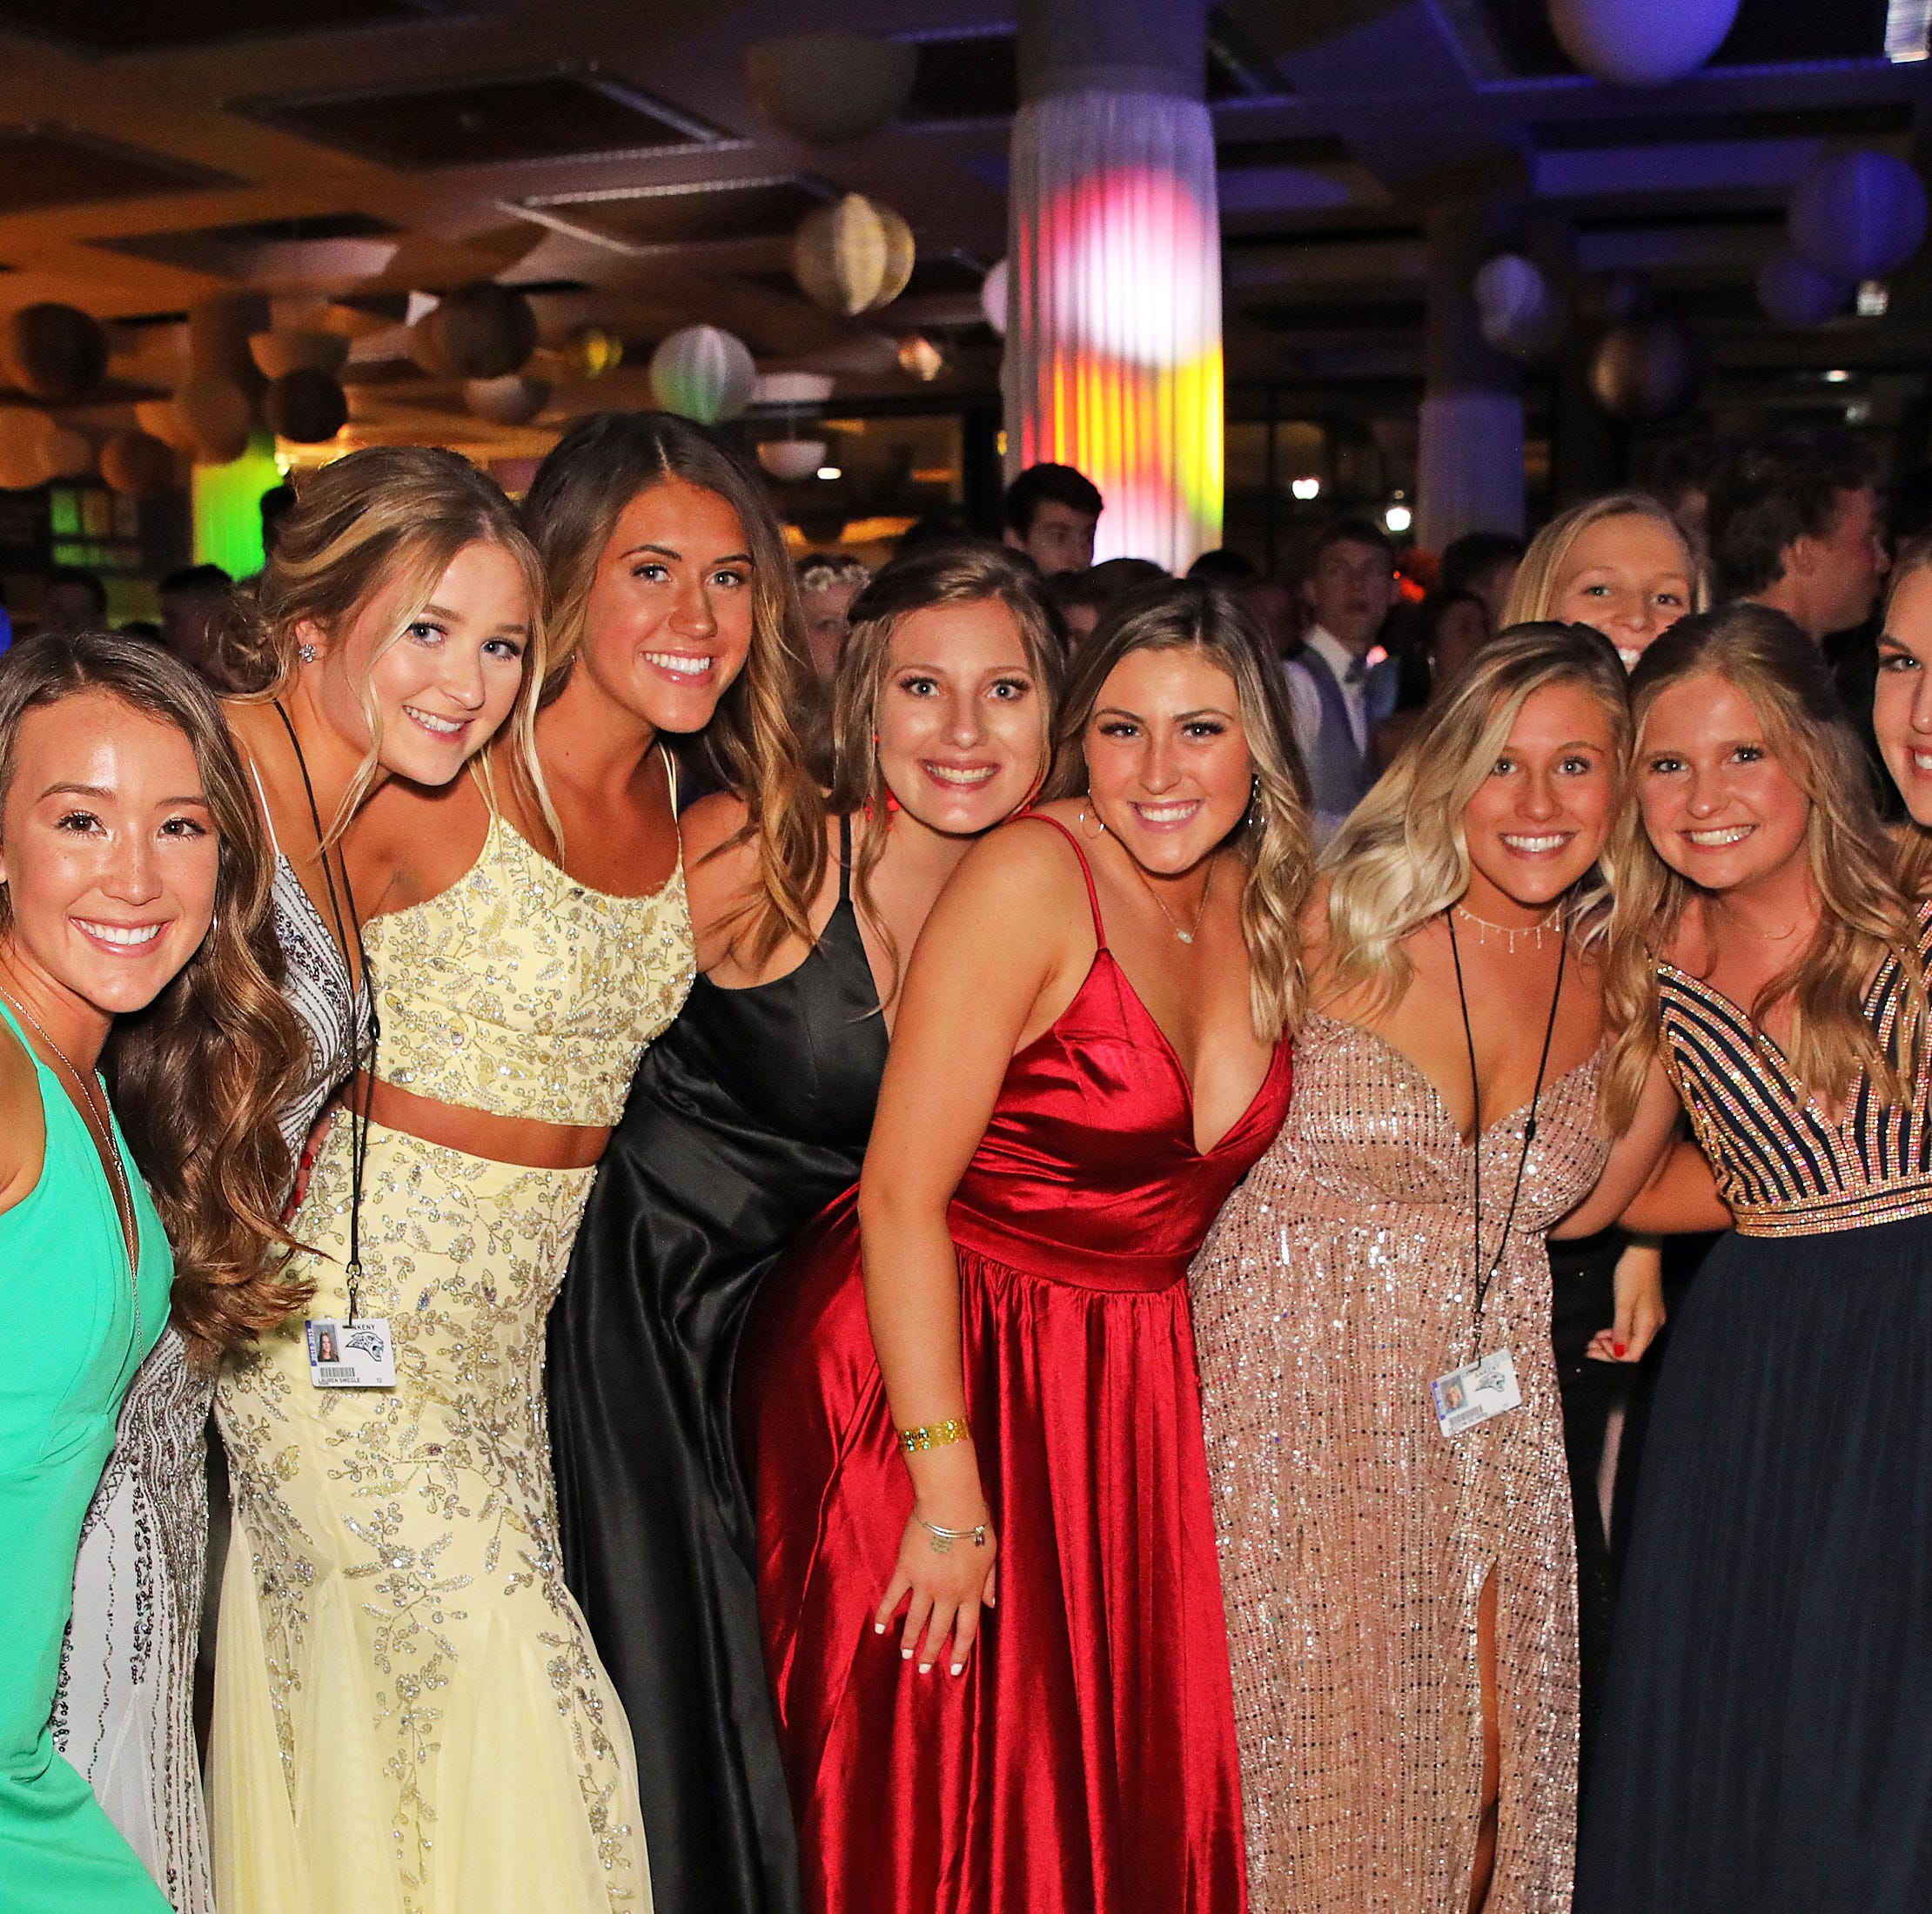 Our best photos from 2019 proms around central Iowa 2019